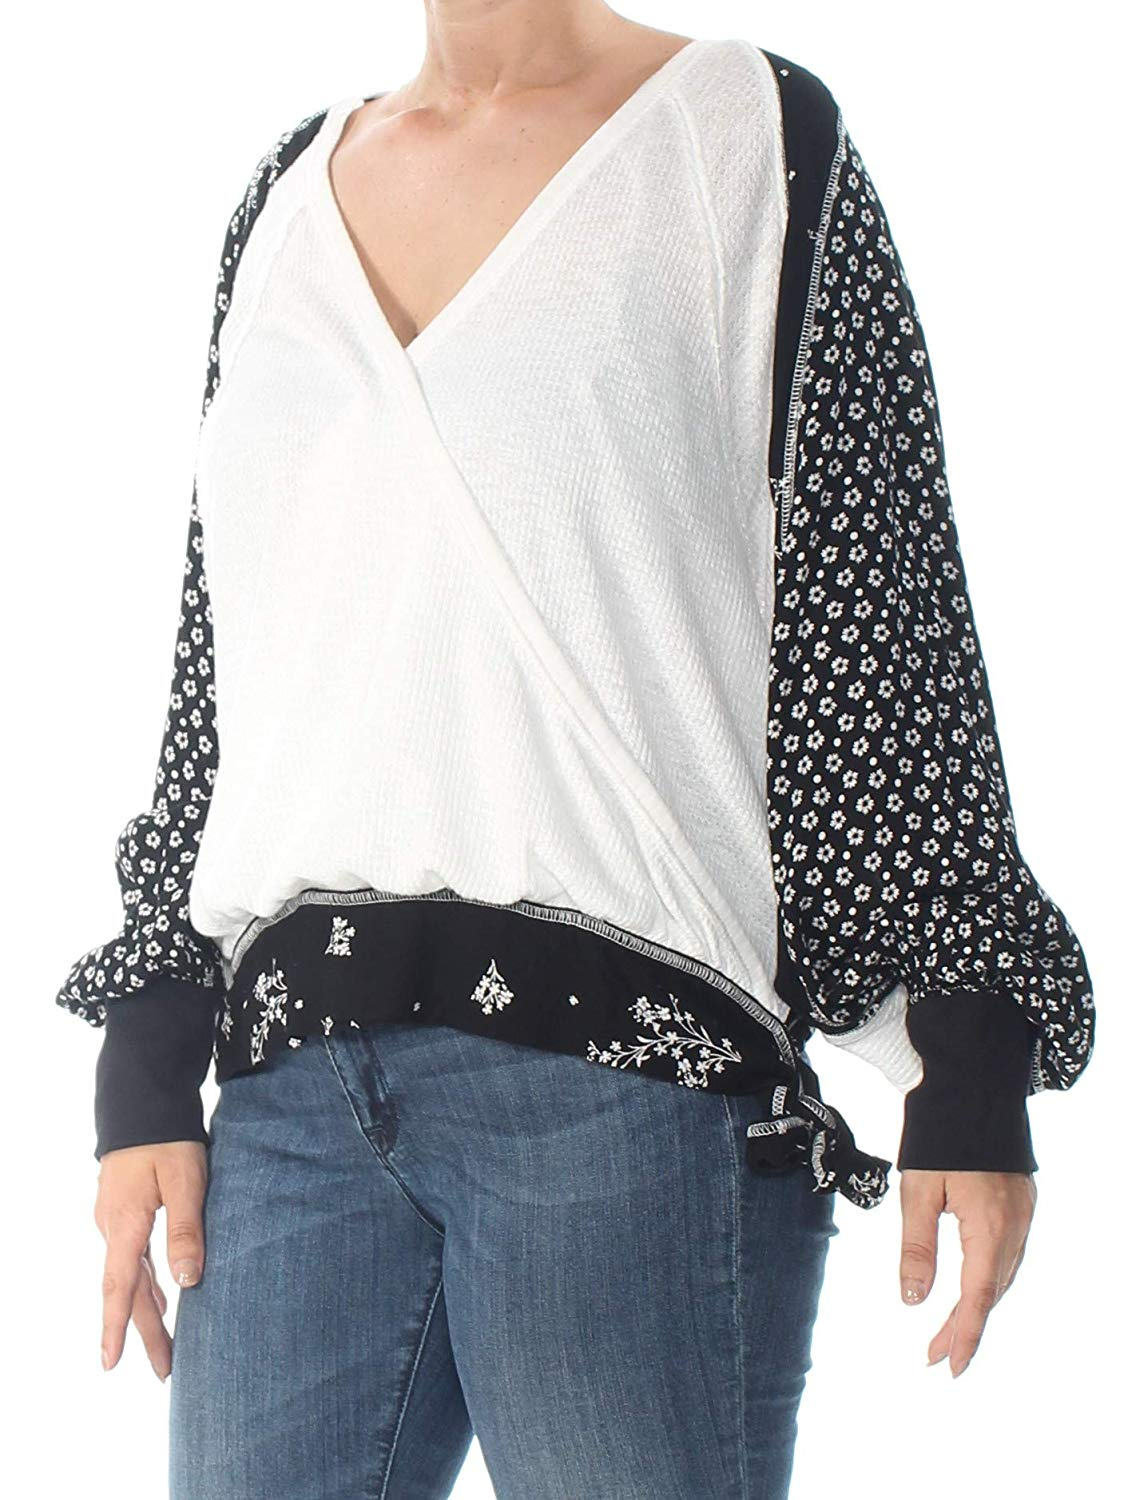 Free-People-Women-039-s-White-Size-Small-S-Floral-Thermal-Knit-Blouse